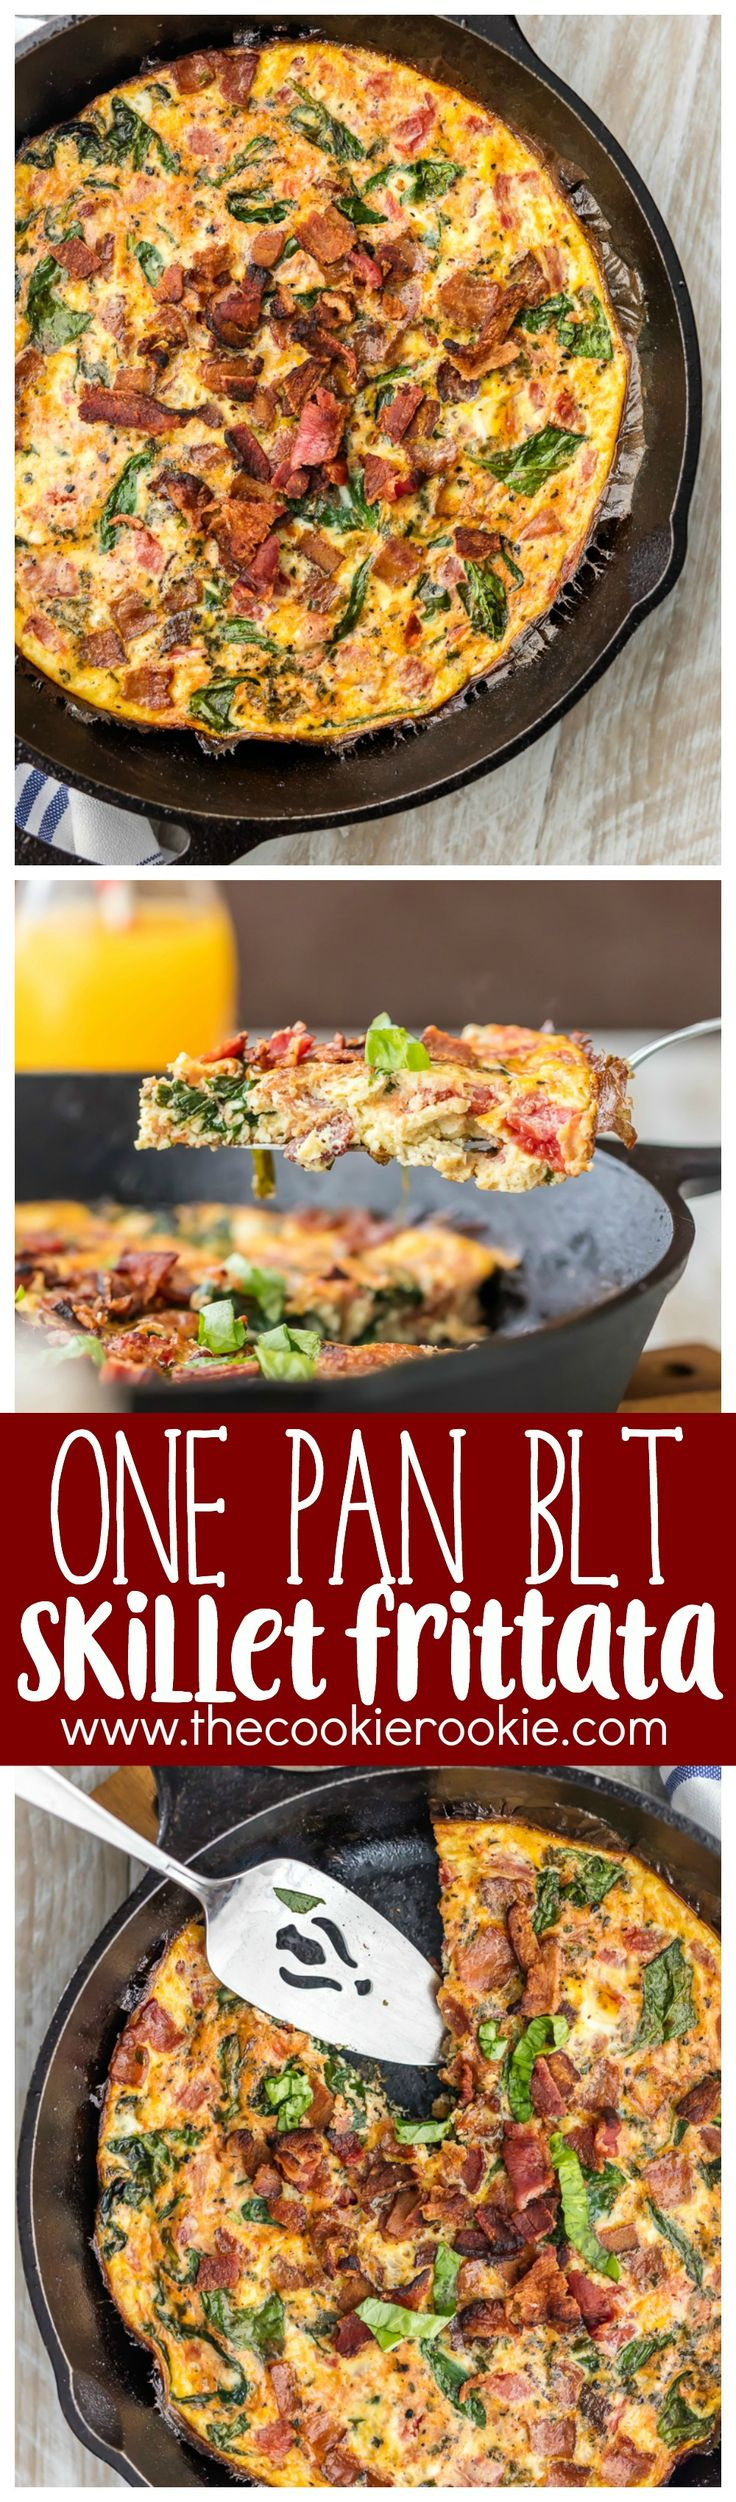 One Pan BLT Skillet Frittata is the perfect EASY RECIPE for breakfast or brunch! Healthy, delicious, and quick. Great for Christmas morning brunch!